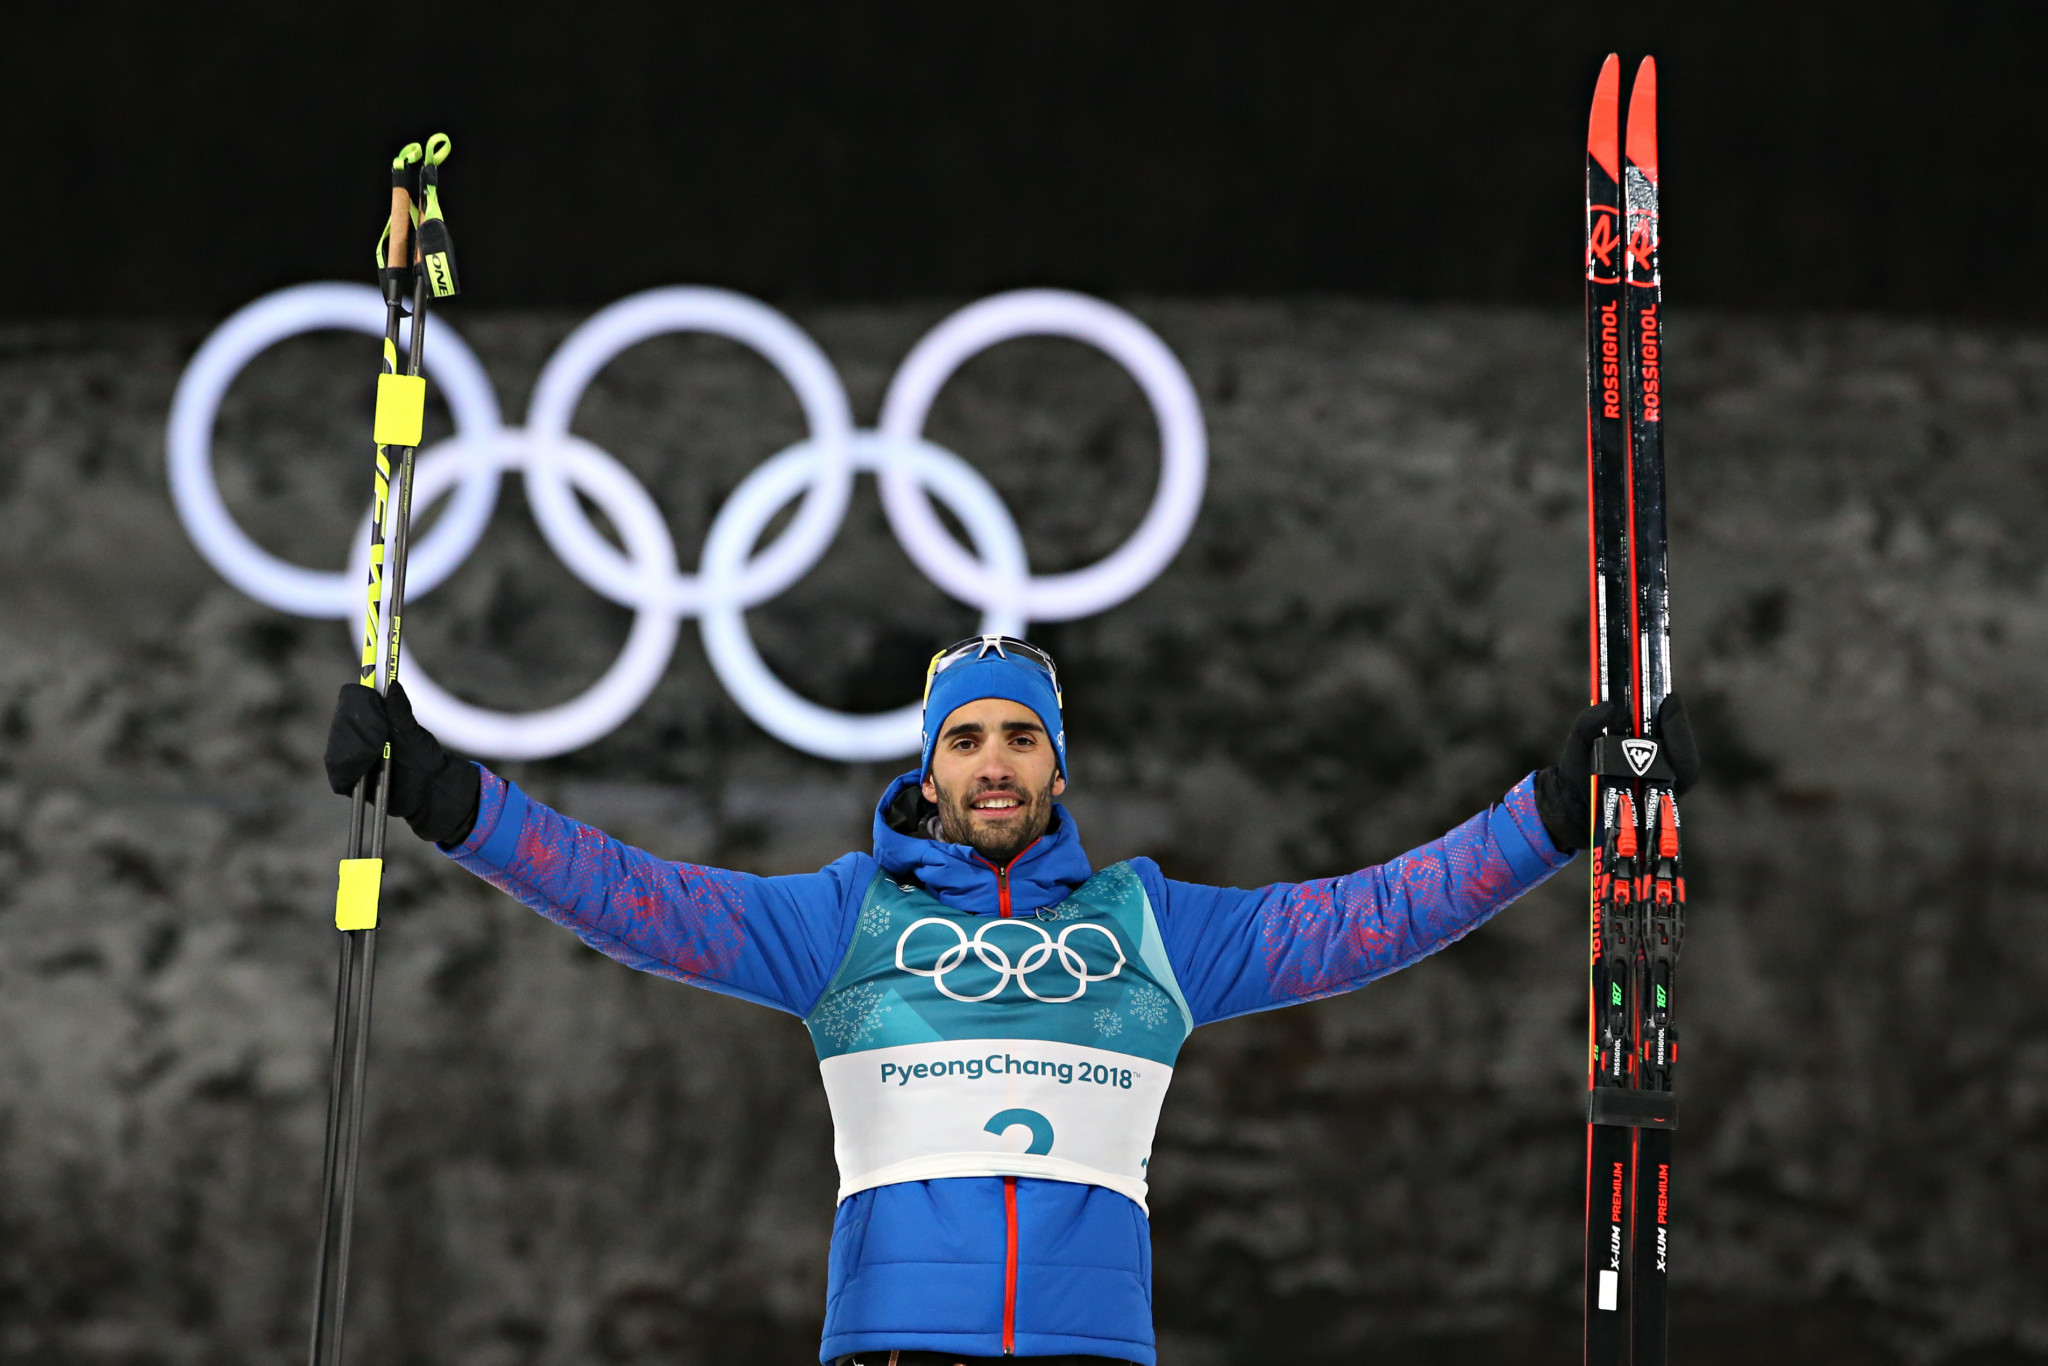 Martin Fourcade has now won four Olympic gold medals, a French record ©Getty Images